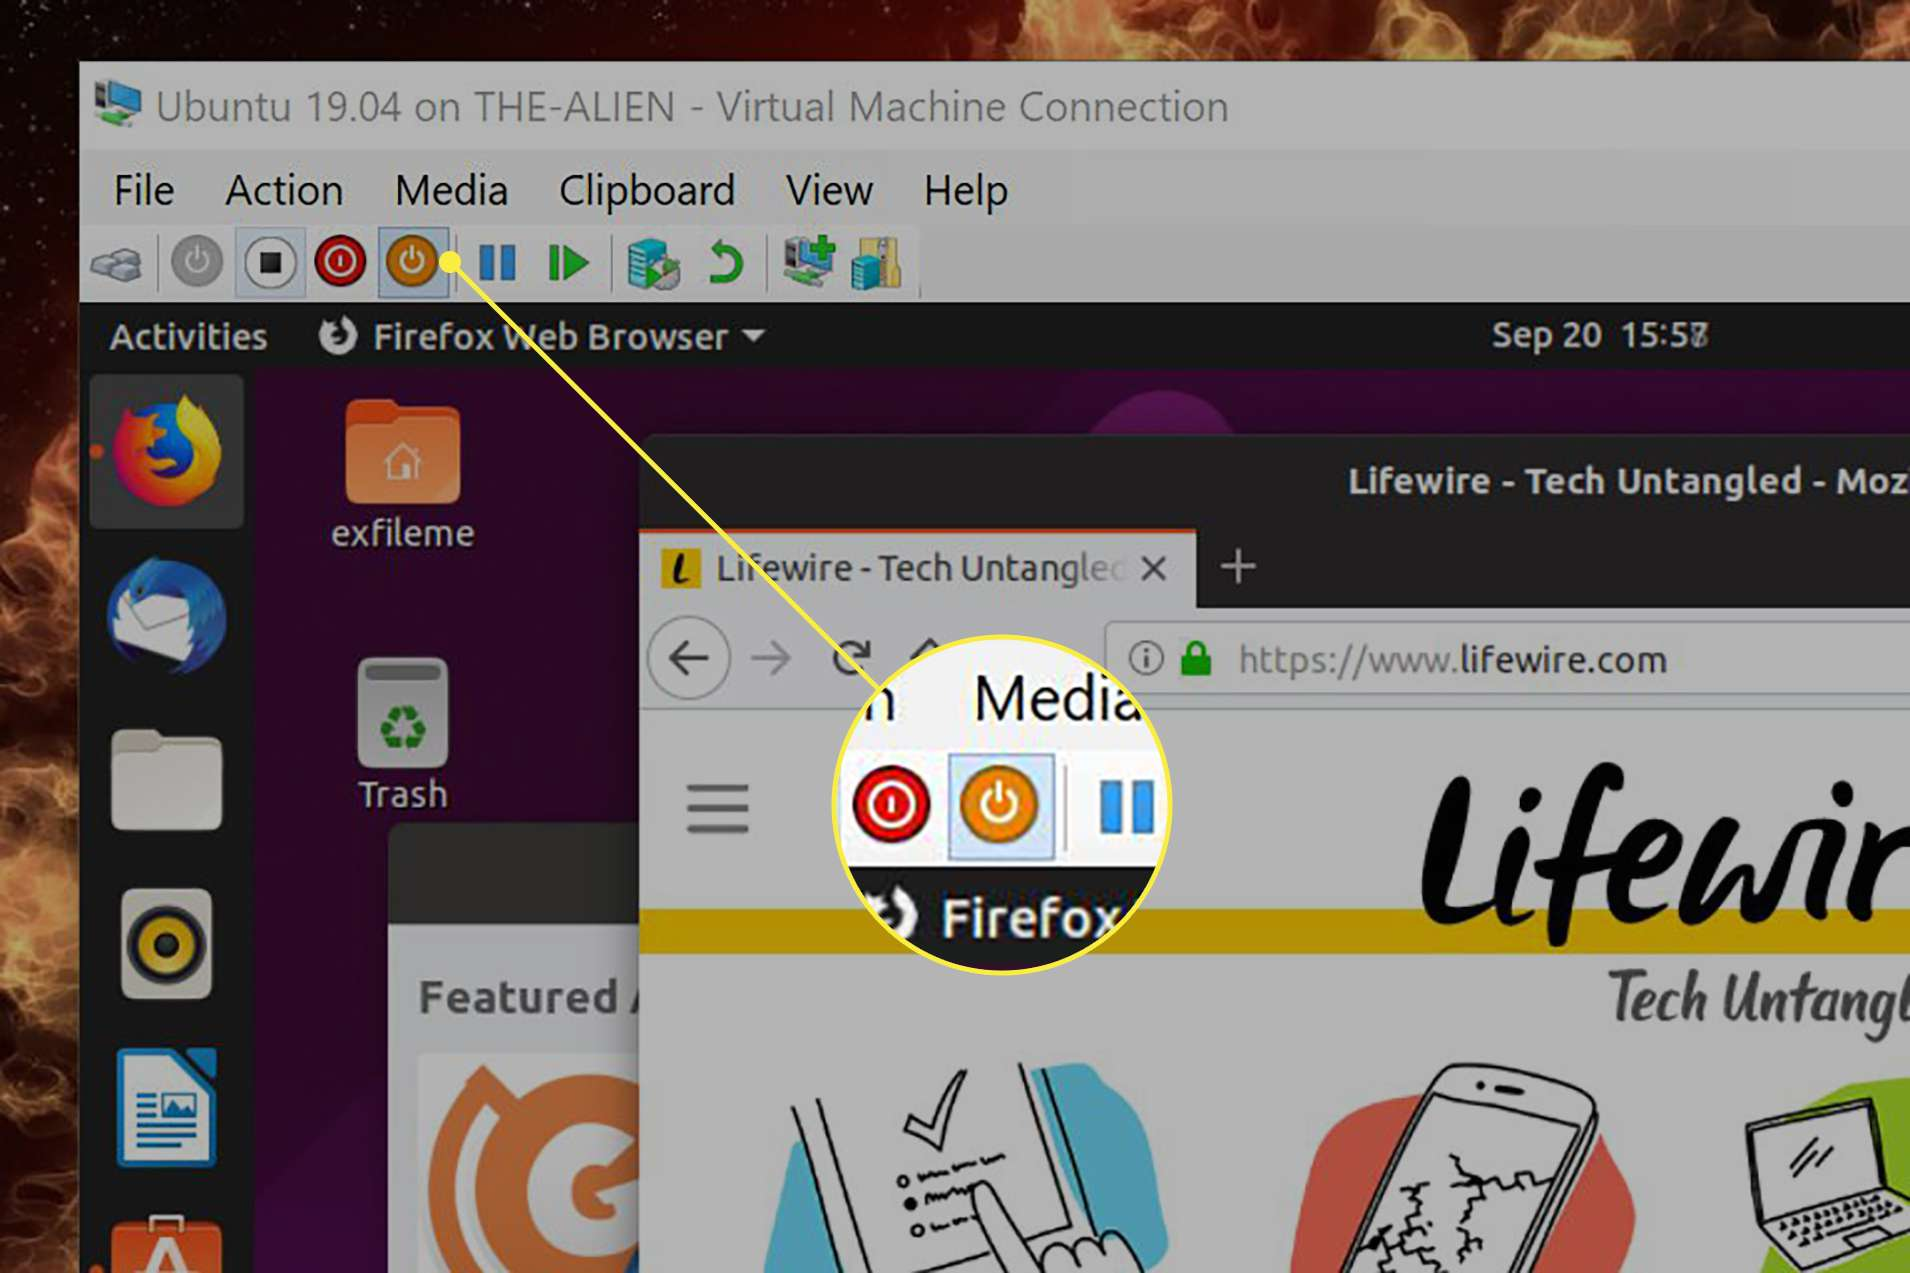 The Save button for a virtual machine